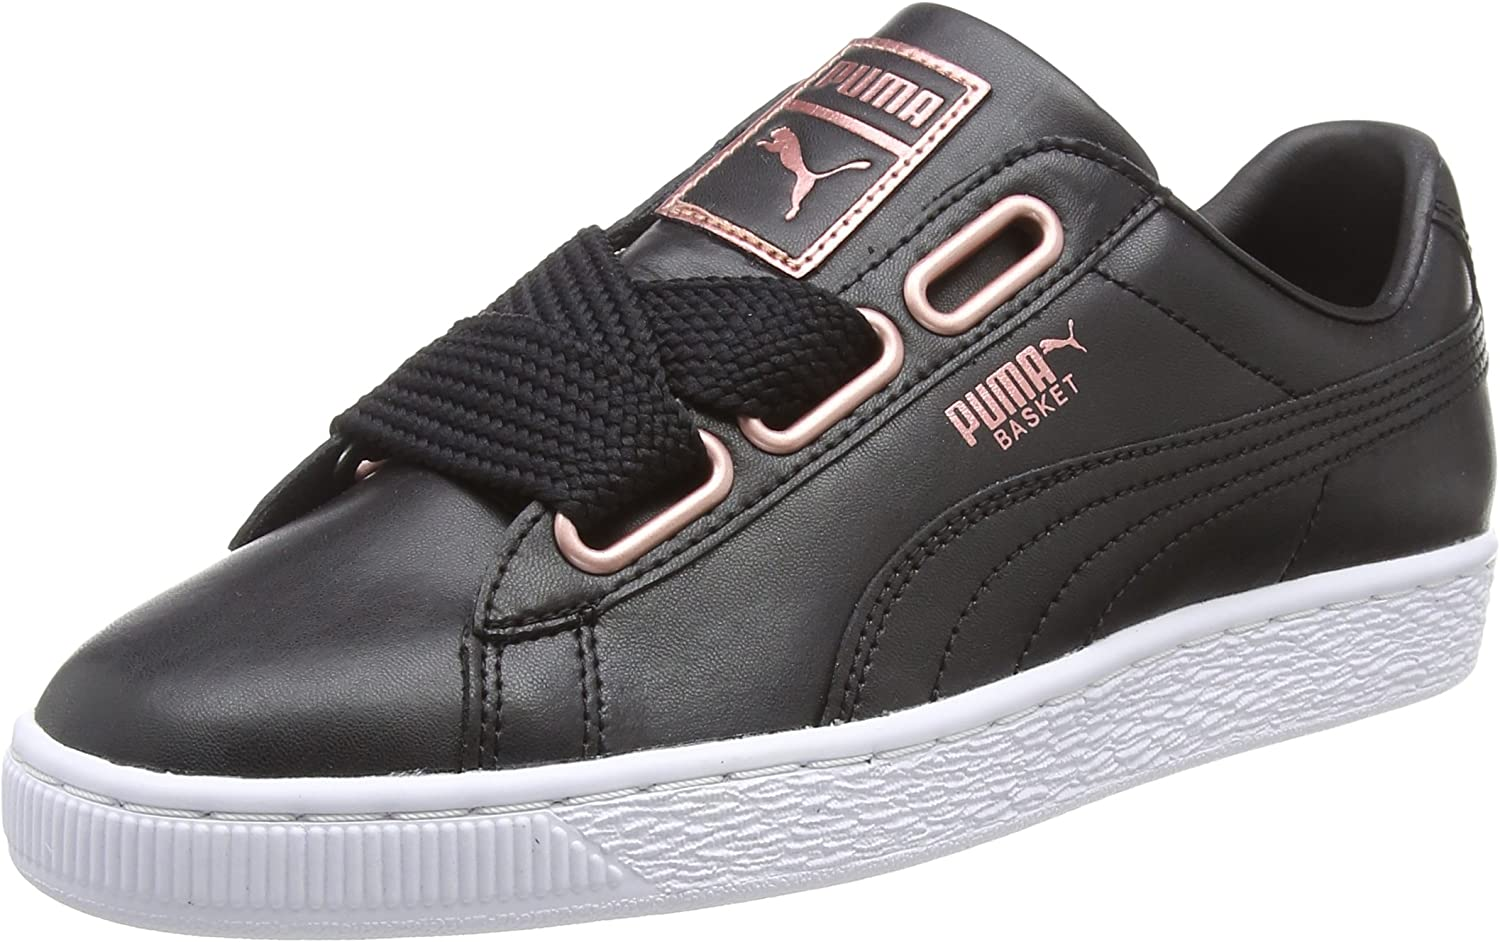 PUMA Women's Basket Heart Leather WN's Low-Top Sneakers Black pink gold